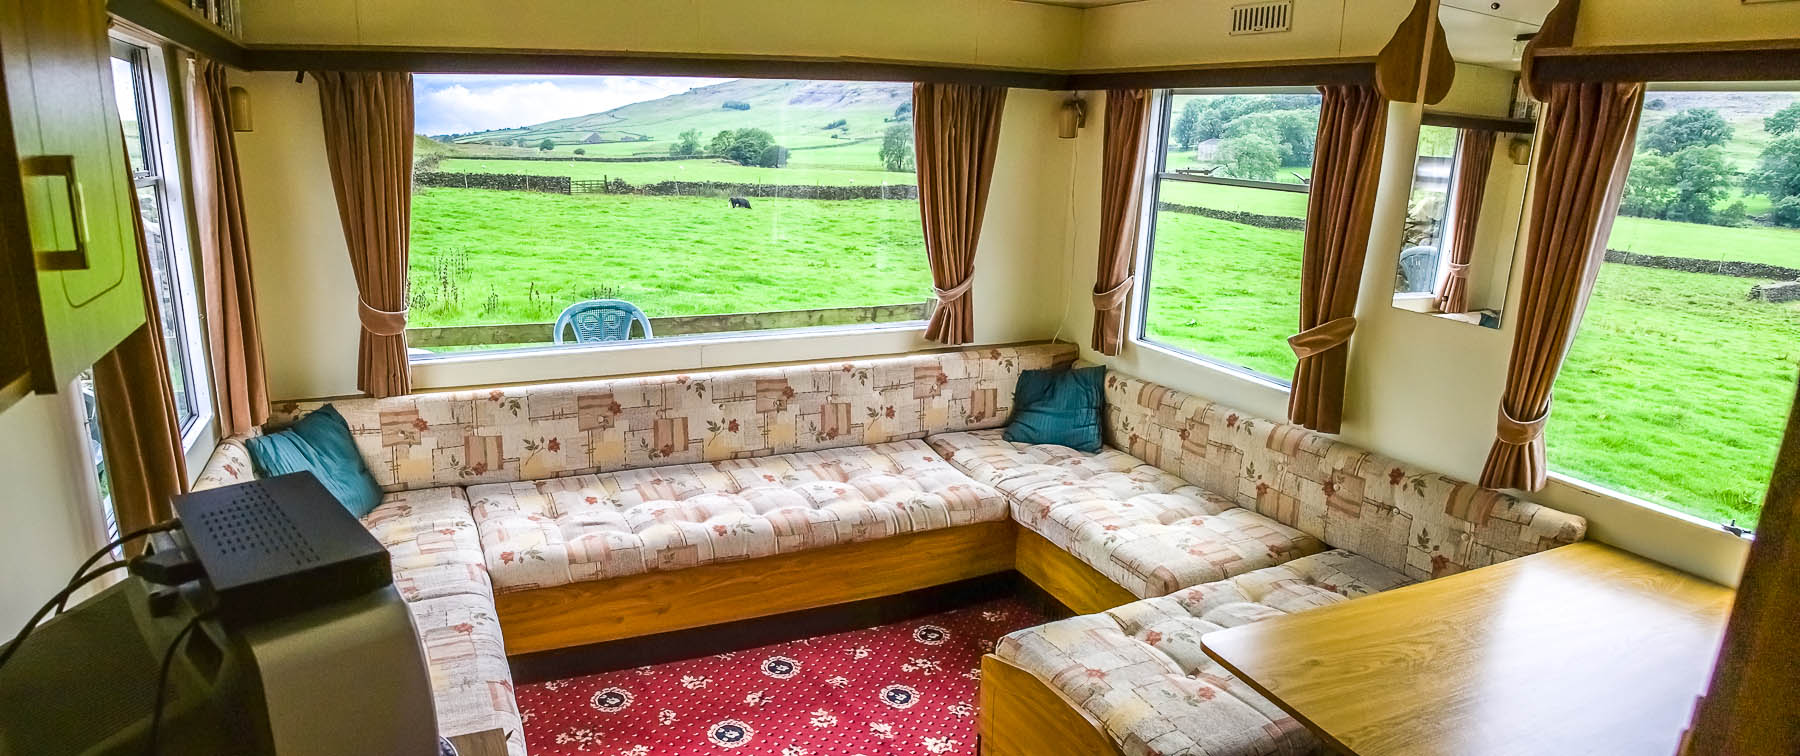 dale house farm caravan panorama